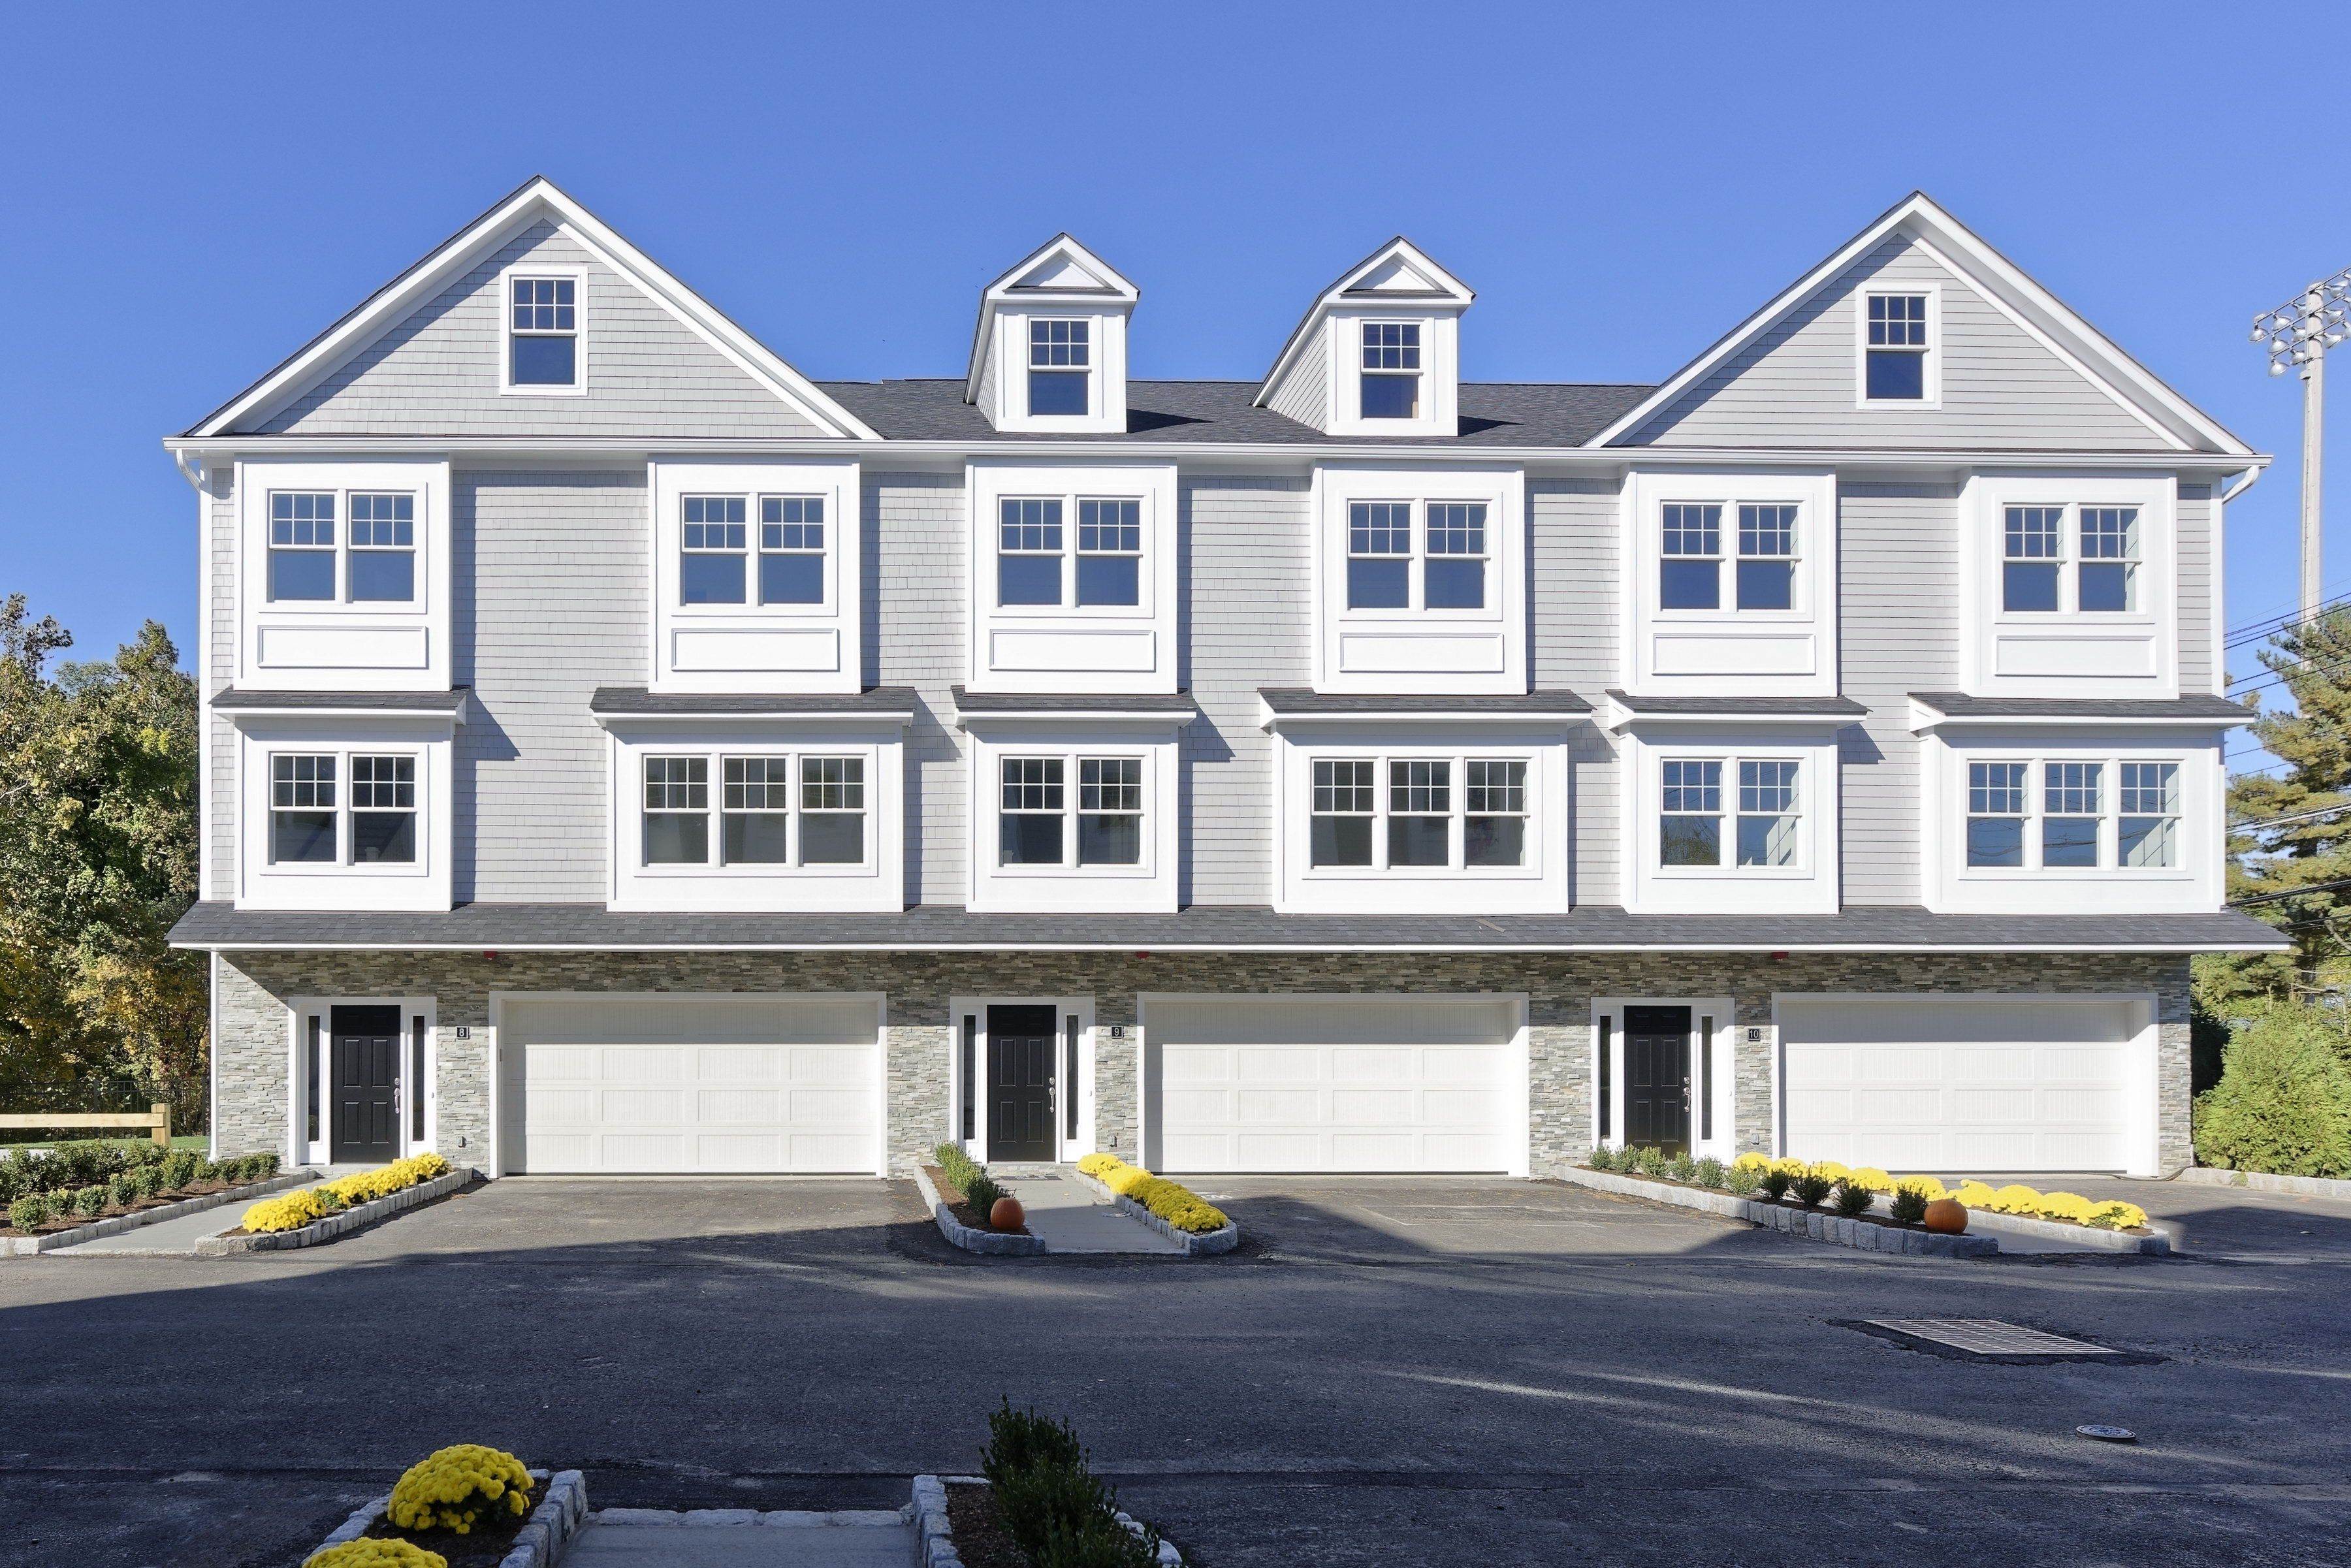 Condominium for Sale at New Luxury Townhomes 8 The Pointe (Bowman Ave.) Unit #8 8 Rye Brook, New York, 10573 United States